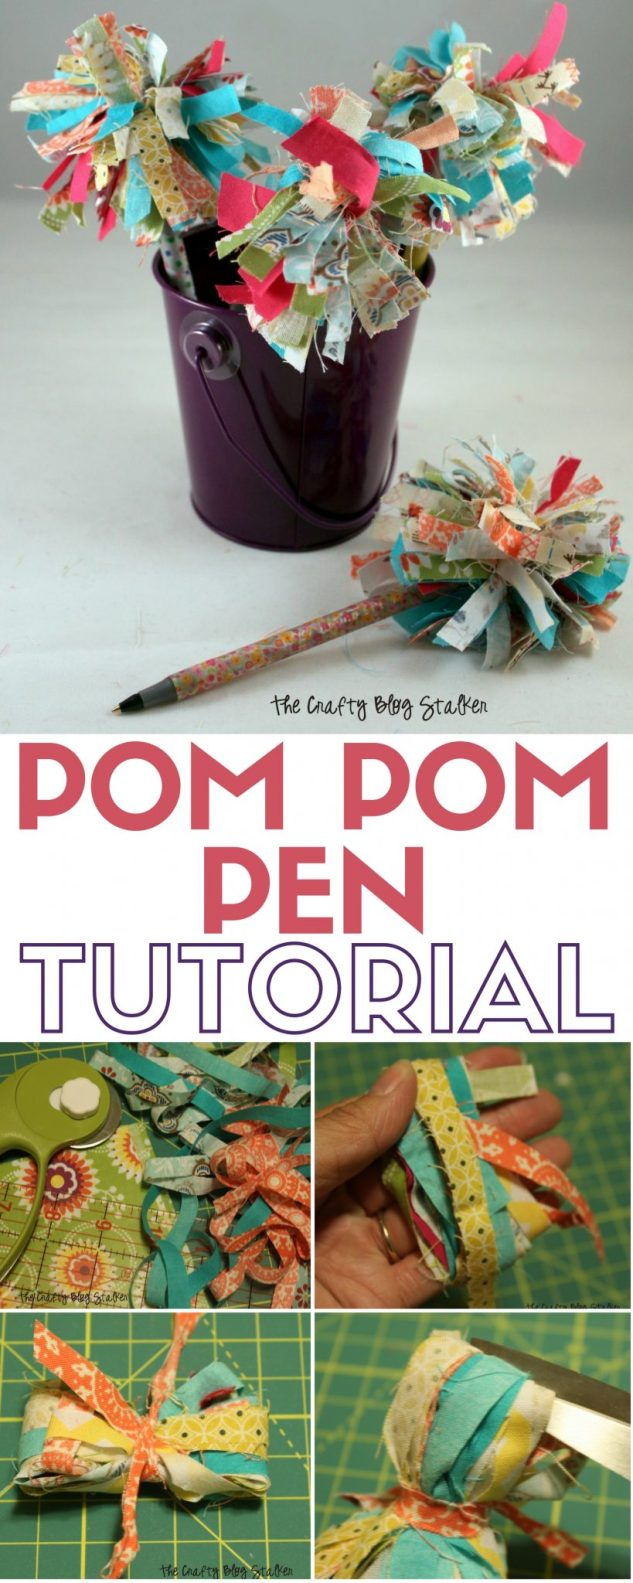 Learn how to make pom pom pens with this tutorial. Fun pens make great teacher gifts and are a fun kids craft. A simple DIY craft tutorial idea.